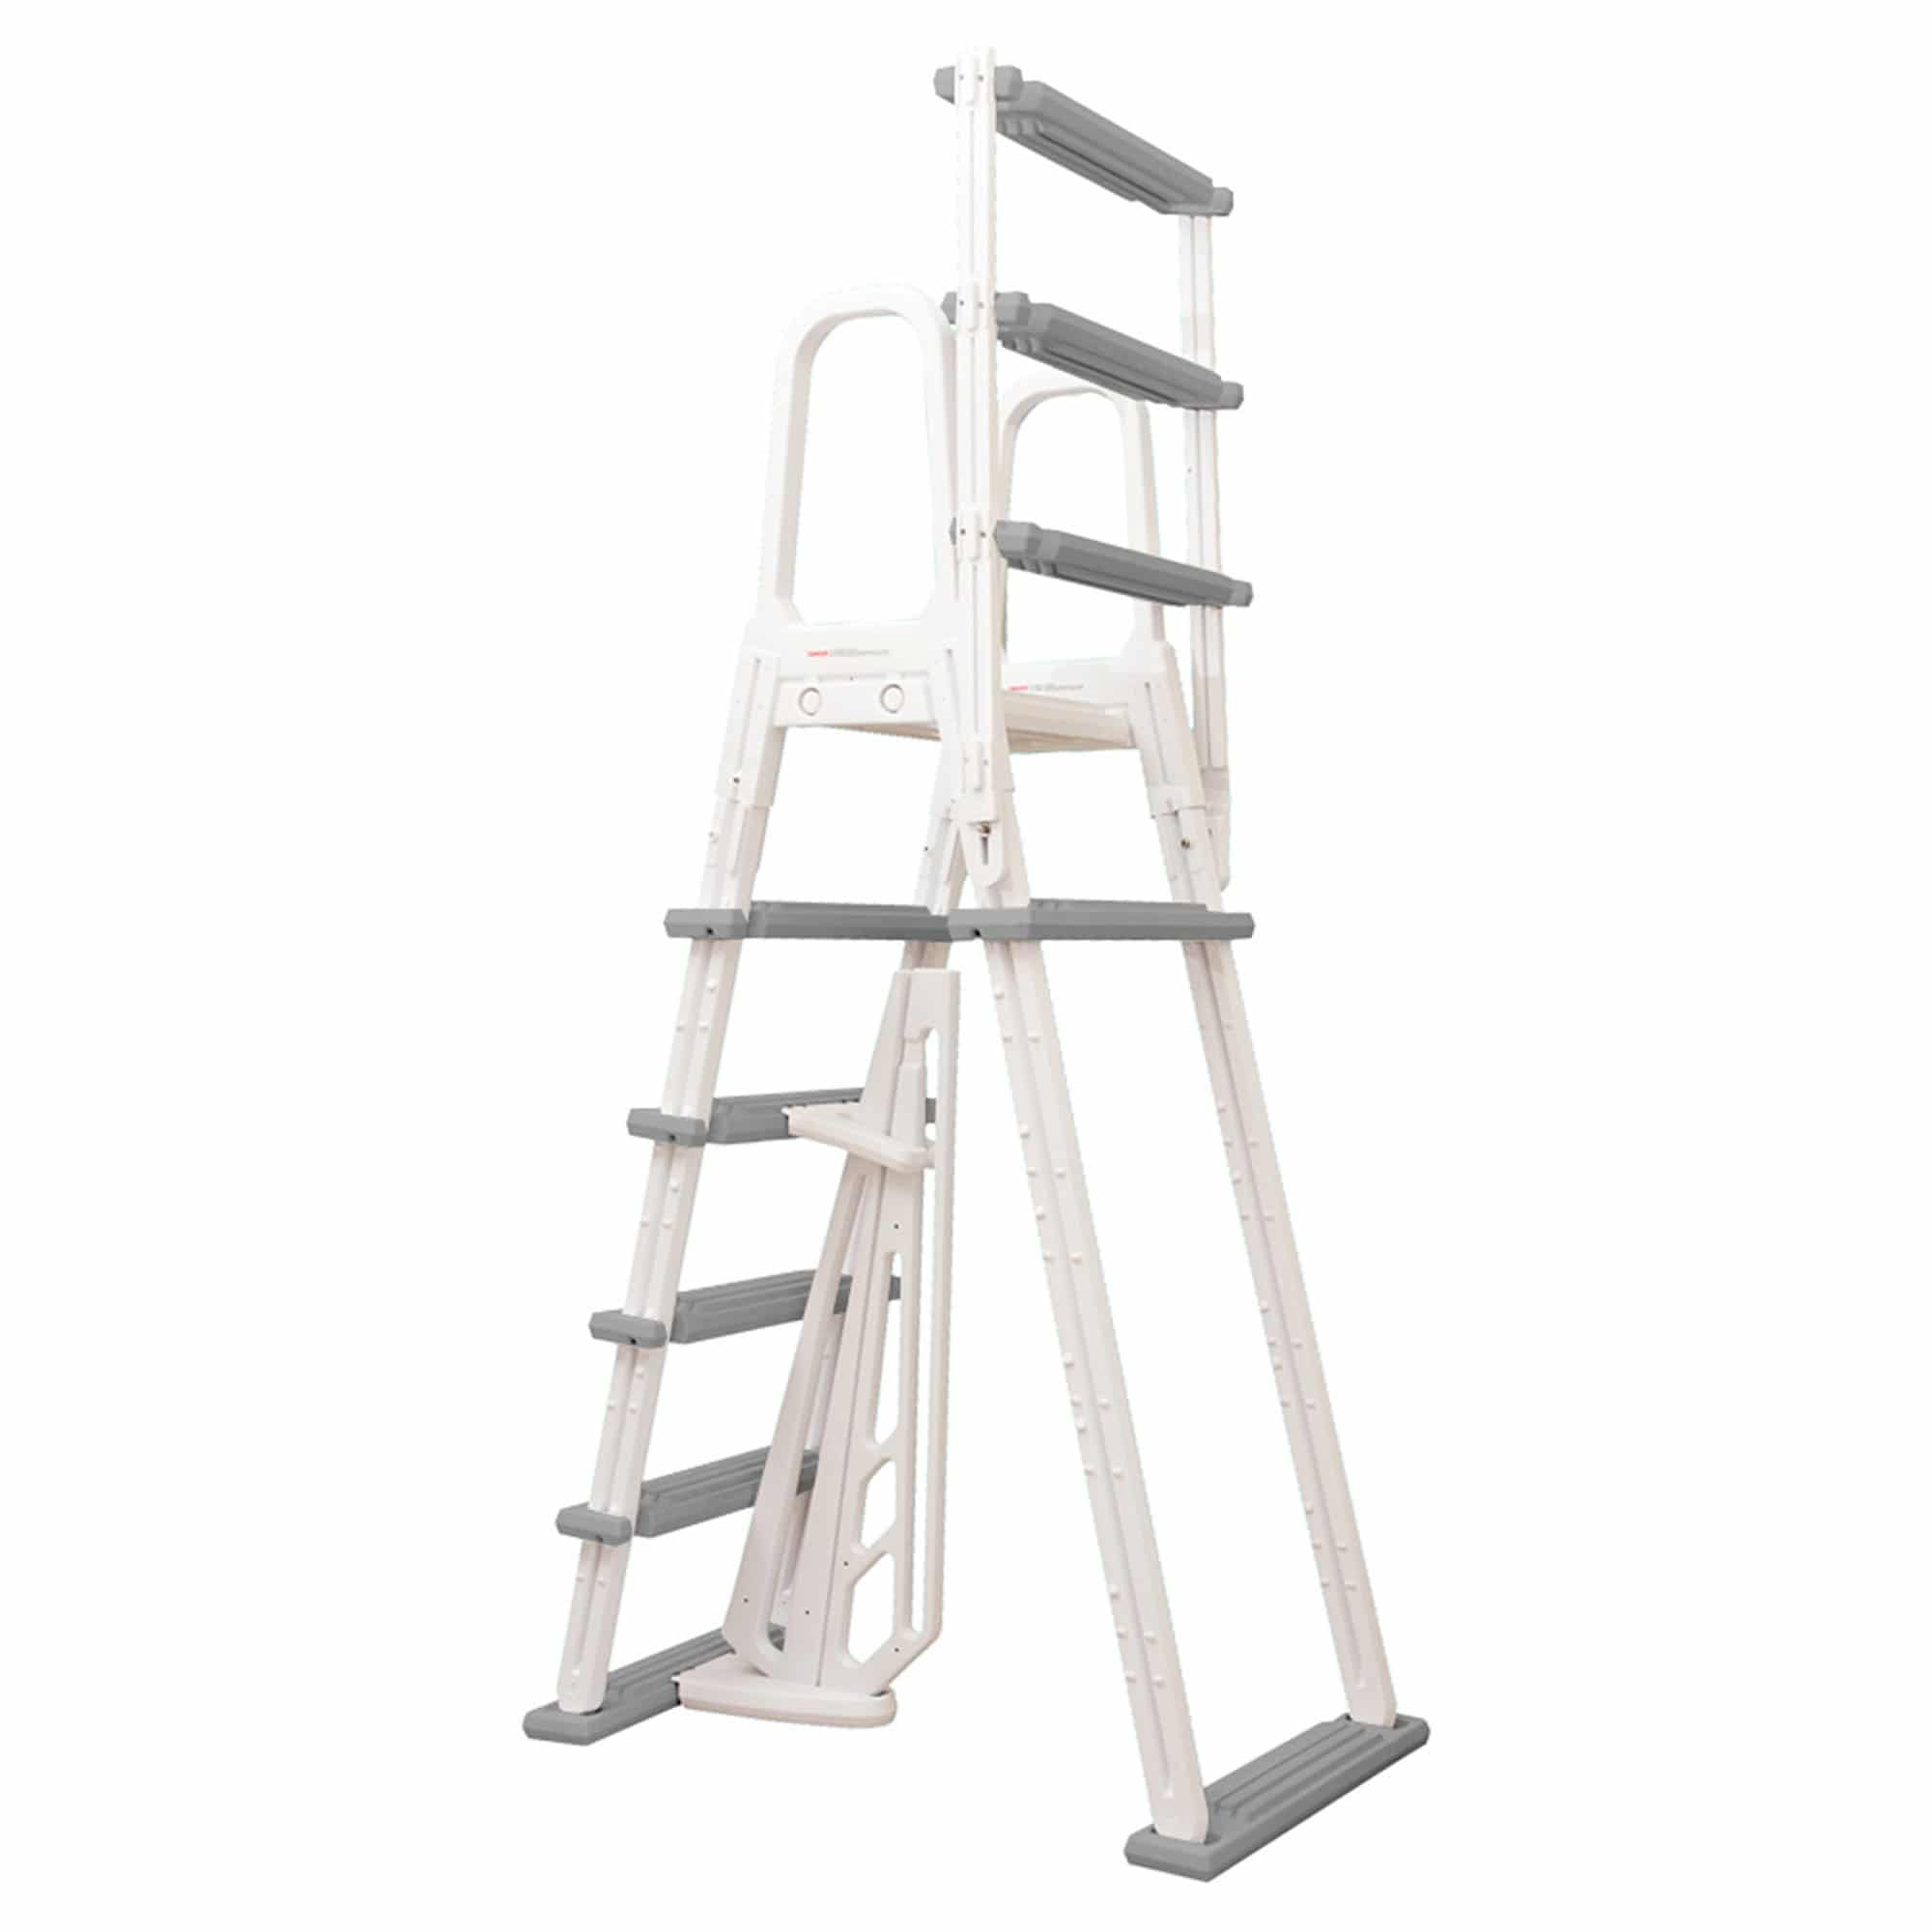 Heavy Duty A-Frame Ladder for Above Ground Pool - Pool Warehouse